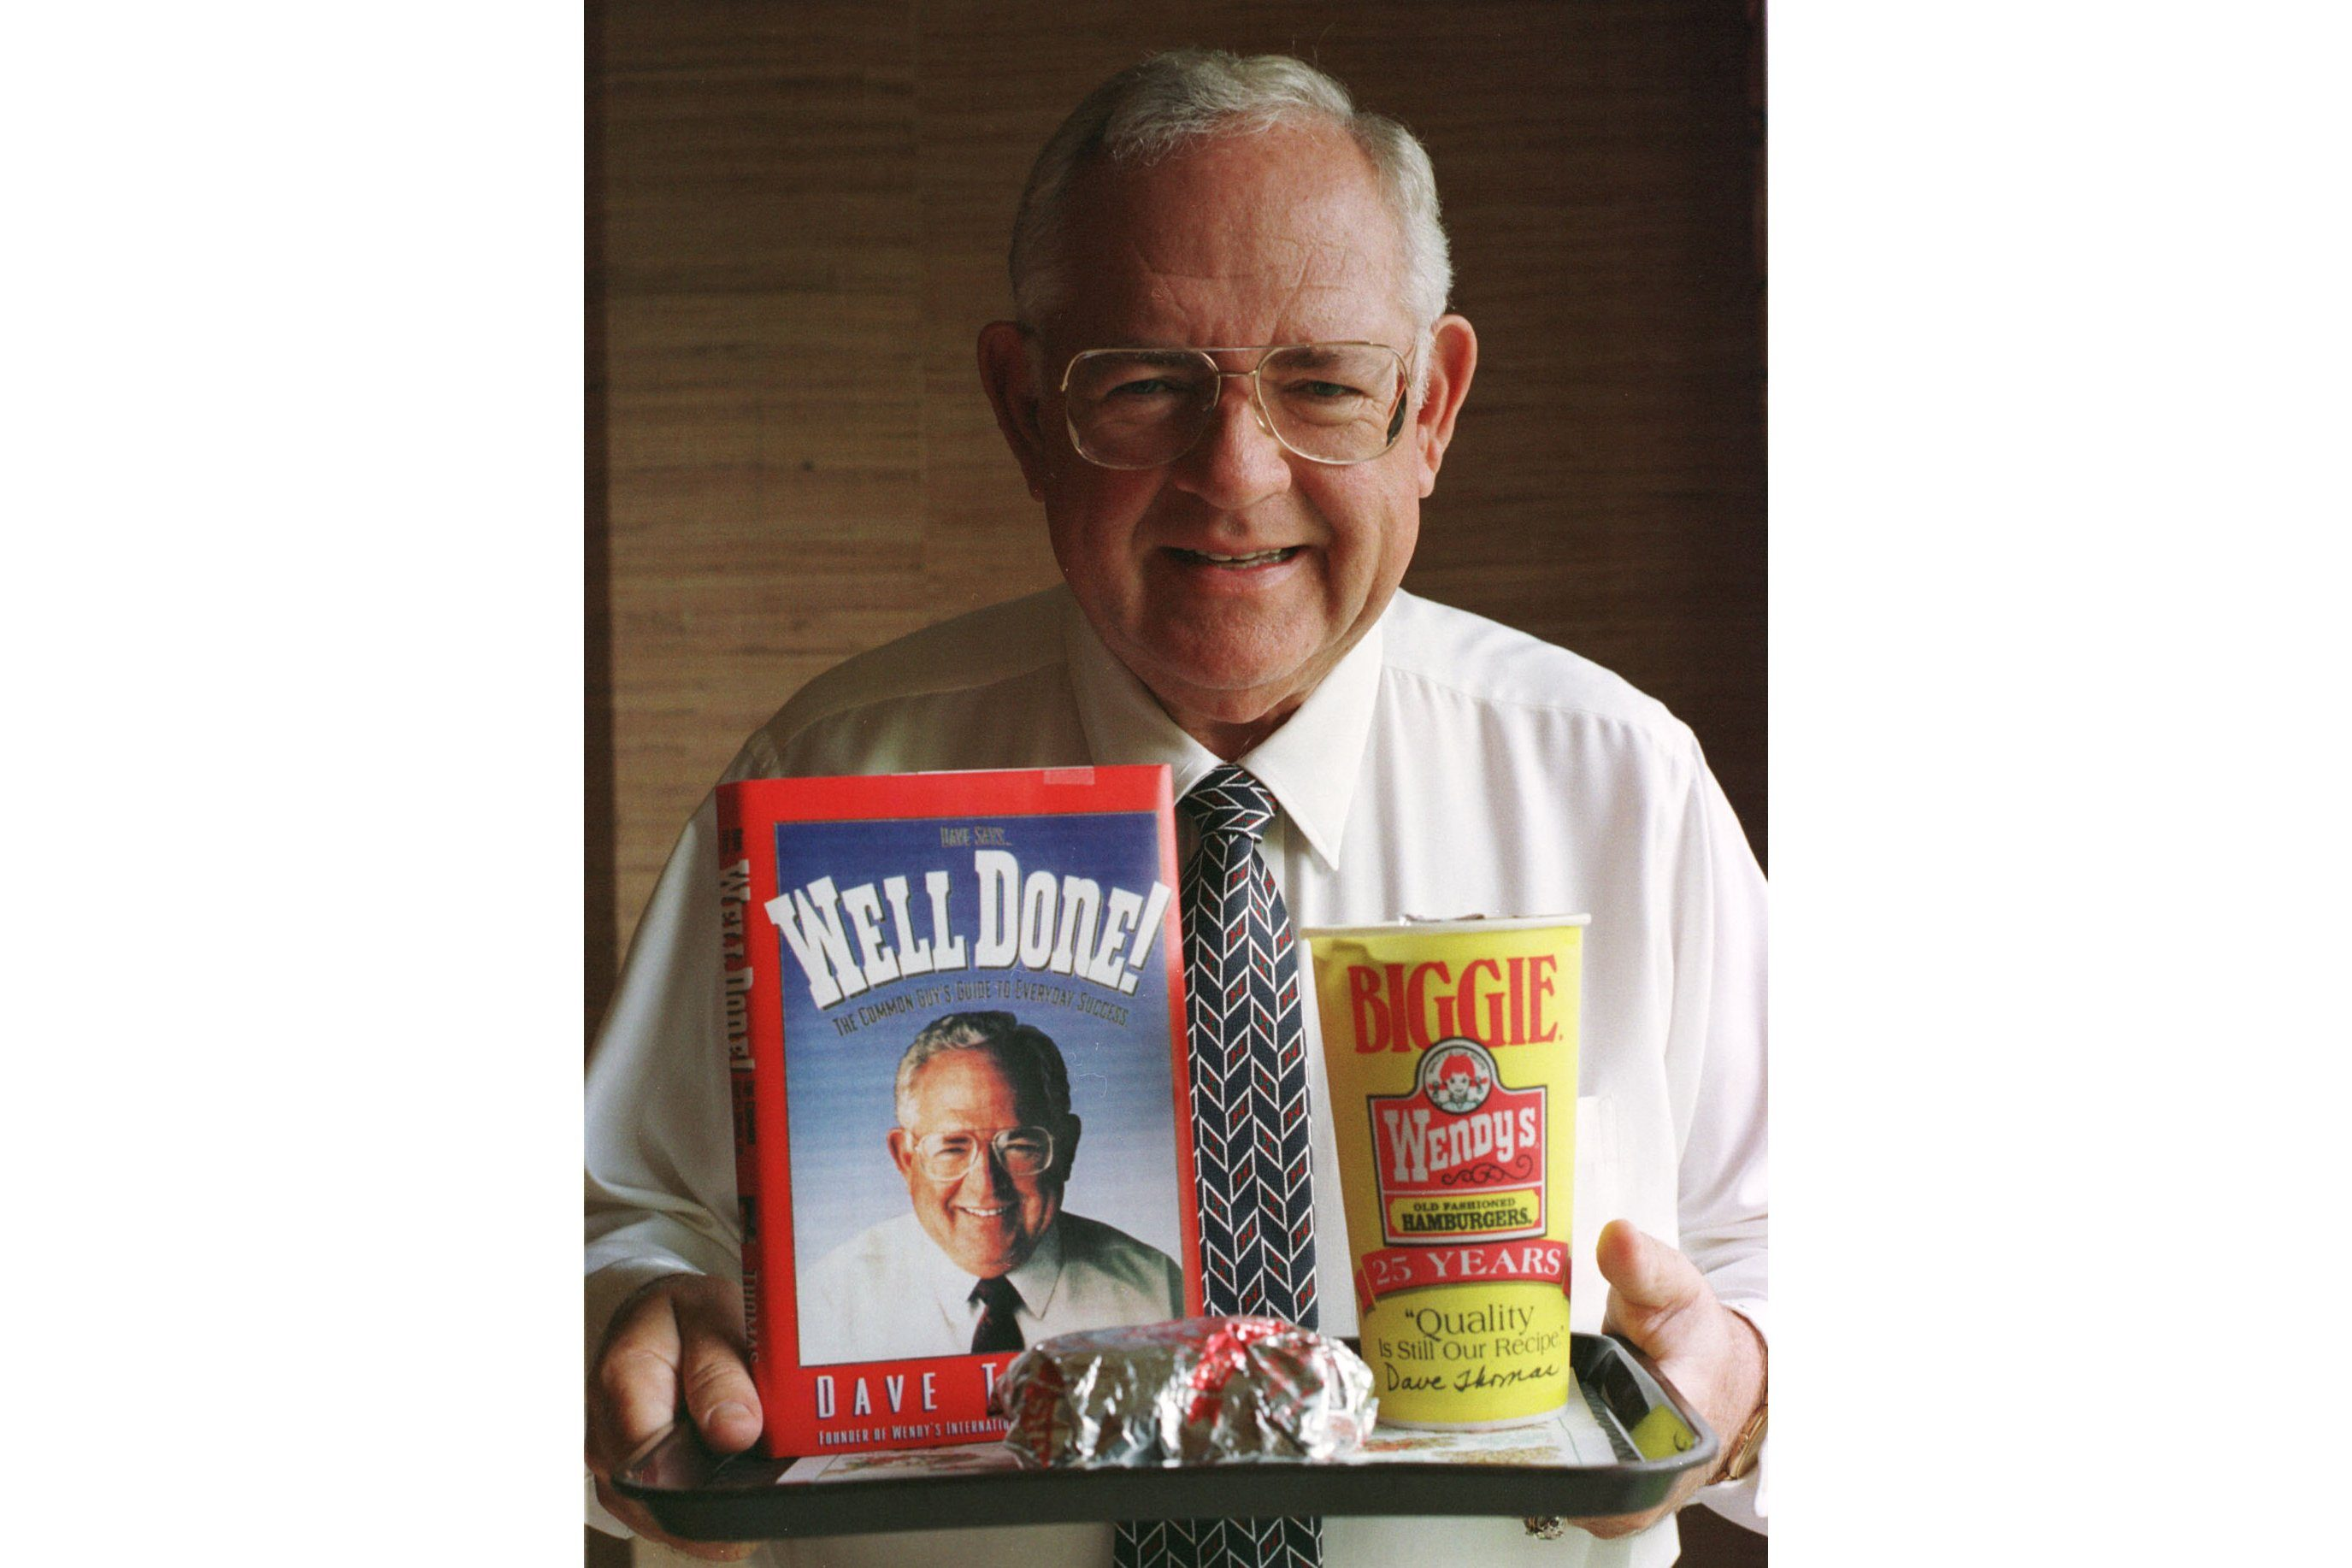 Mandatory Credit: Photo by Chris Kasson/AP/Shutterstock (6582617a) THOMAS Dave Thomas, is shown in this 1994 photo, died around midnight at his home in Fort Lauderdale, Fla., according to Wendy's the company he founded. Thomas, whose homespun ads built Wendy's Old-Fashioned Hamburgers into one of the world's most successful fast-food franchises, had been undergoing dialysis for a kidney problem since early 2001. Thomas had quadruple heart bypass surgery in December 1996 WENDYS DAVE THOMAS, COLUMBUS, USA